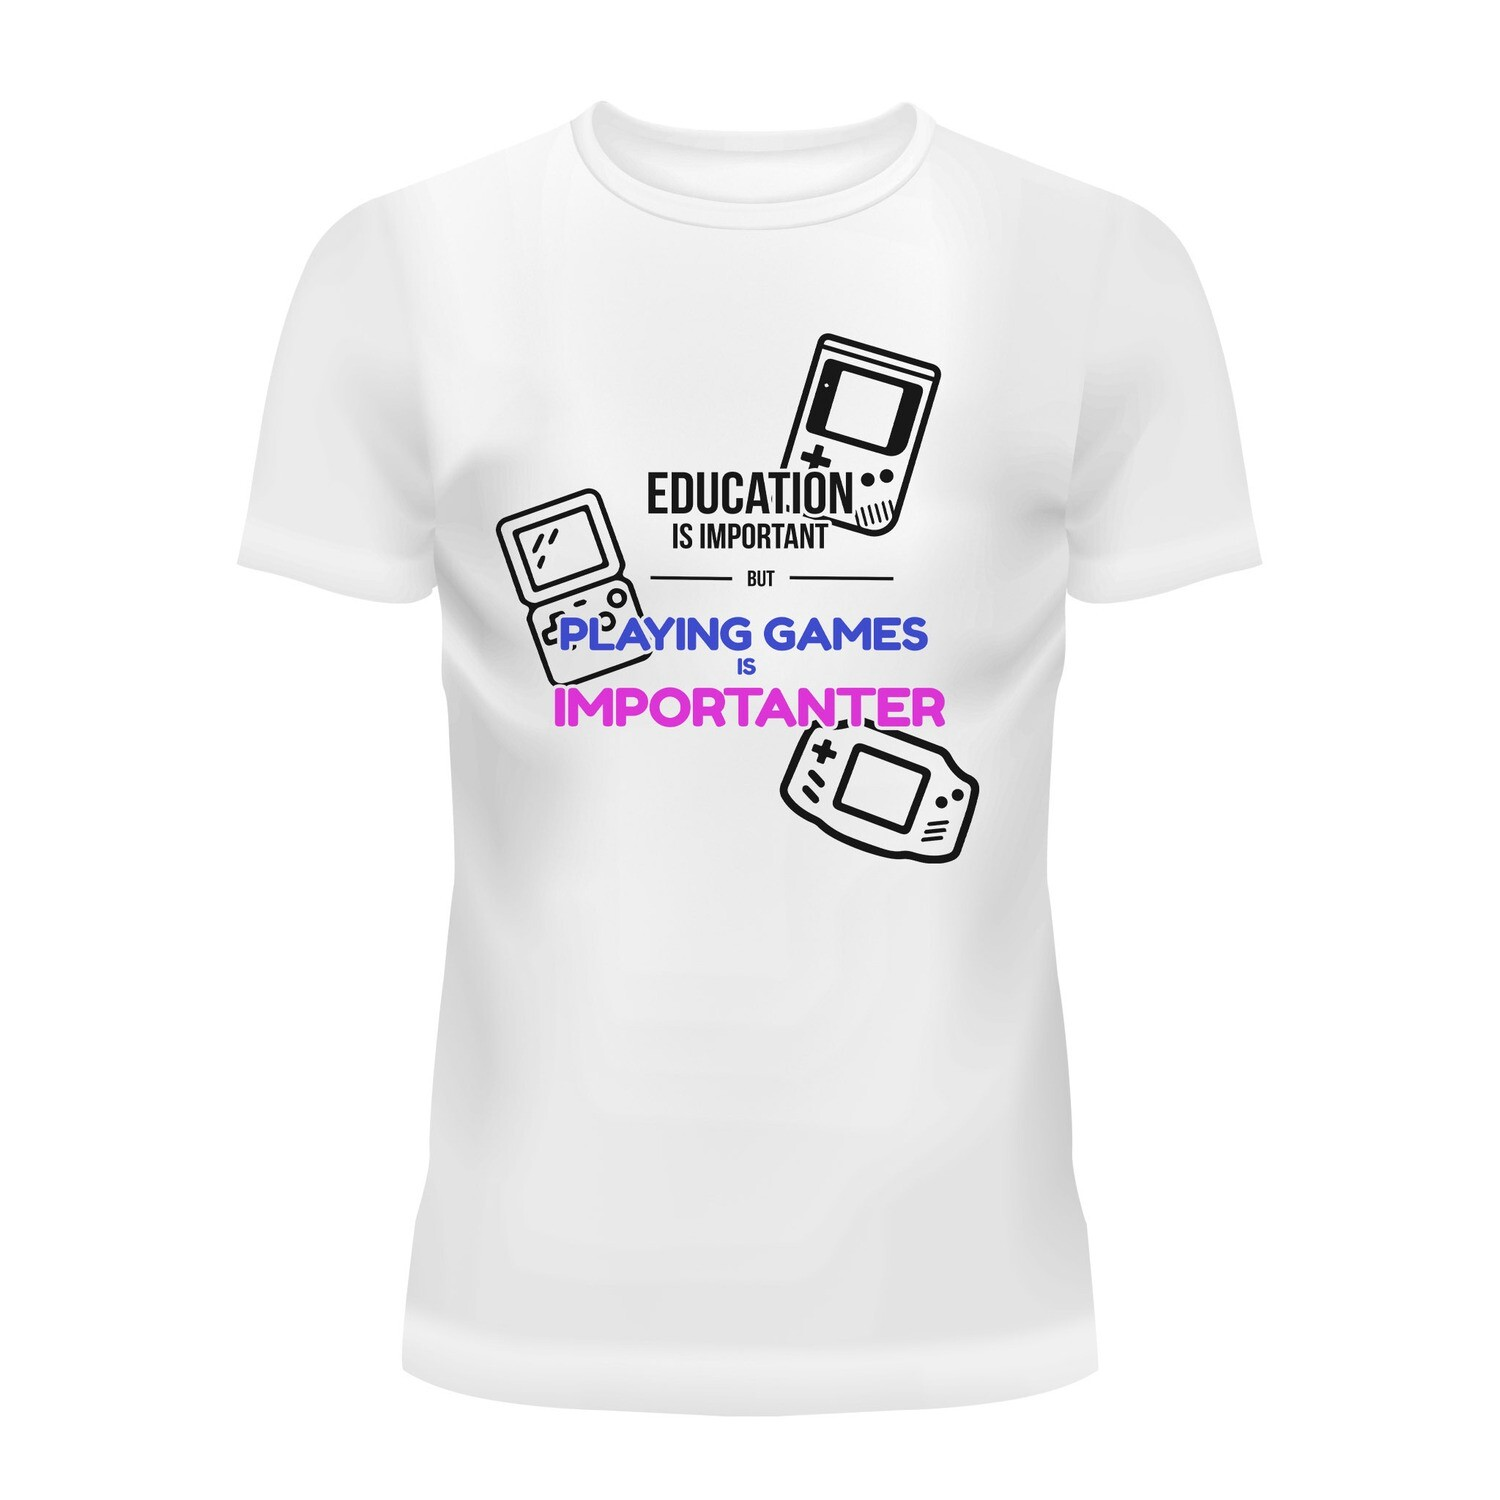 Cotton T-Shirt (Playing Games is Importanter)